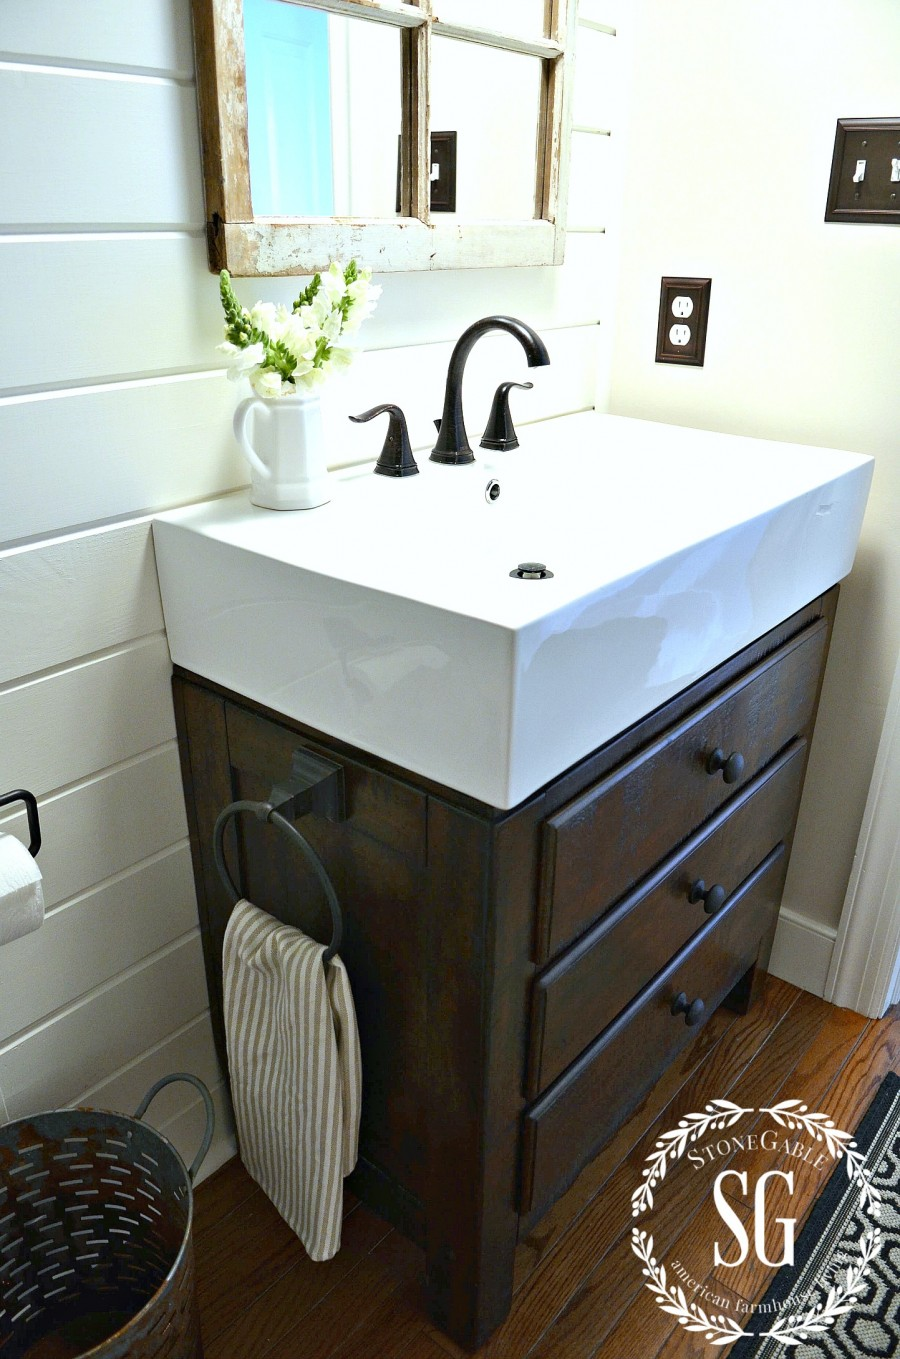 Nothing is more farmhouse than a plank wall and large trough sink in the bathroom.  This powder room from Stone Gable Blog is perfectly styled.  | Friday Favorites at www.andersonandgrant.com